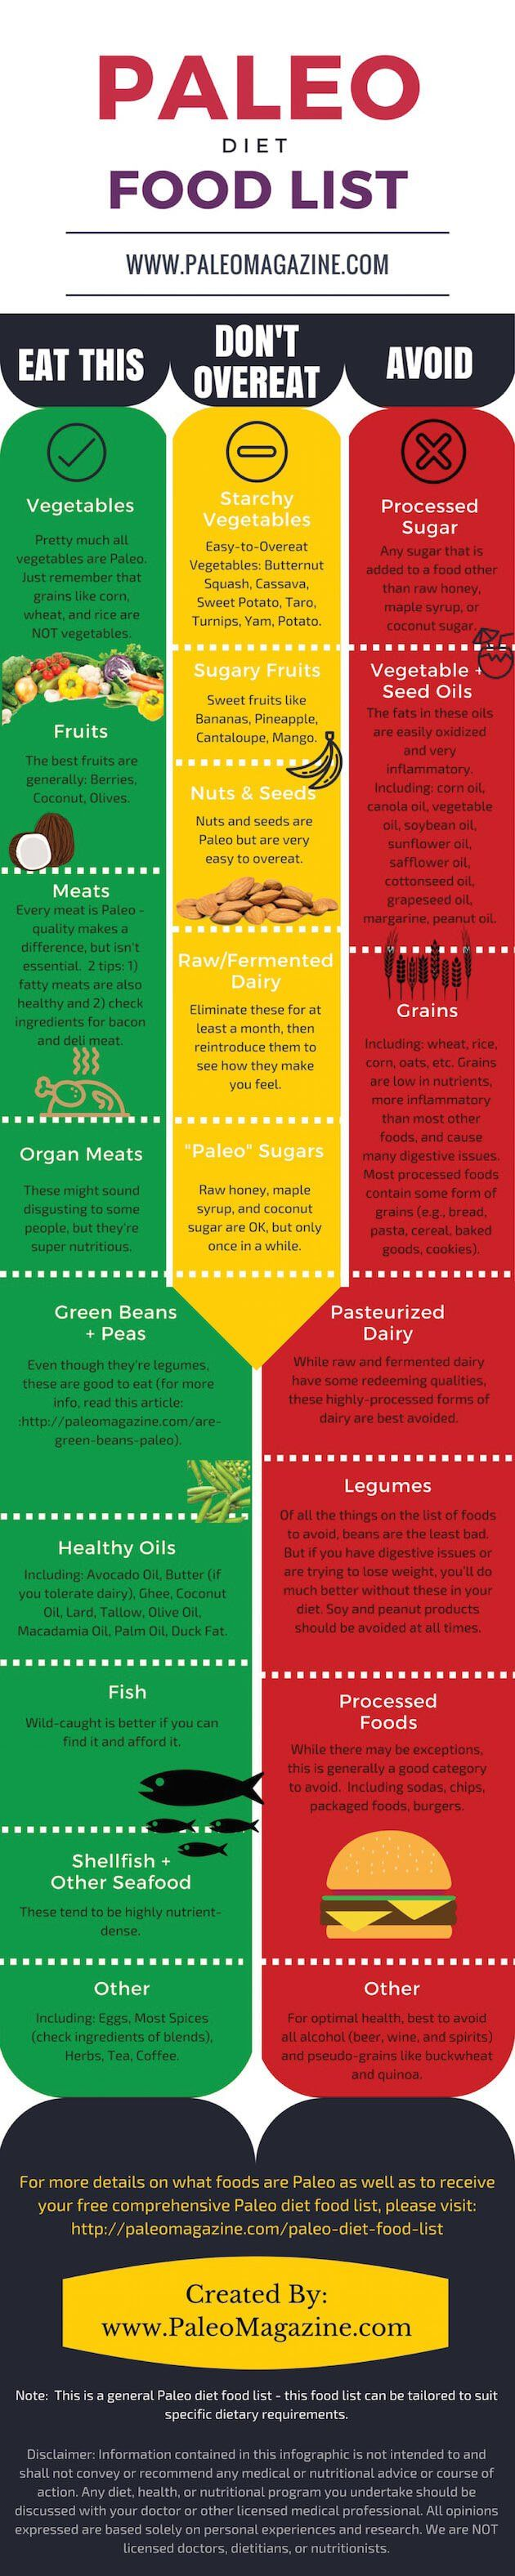 Paleo Diet Food List Infographic Image - visit https://paleomagazine.com/paleo-diet-food-list to get this complete Paleo Diet Food List - including a downloadable PDF to reference wherever you go